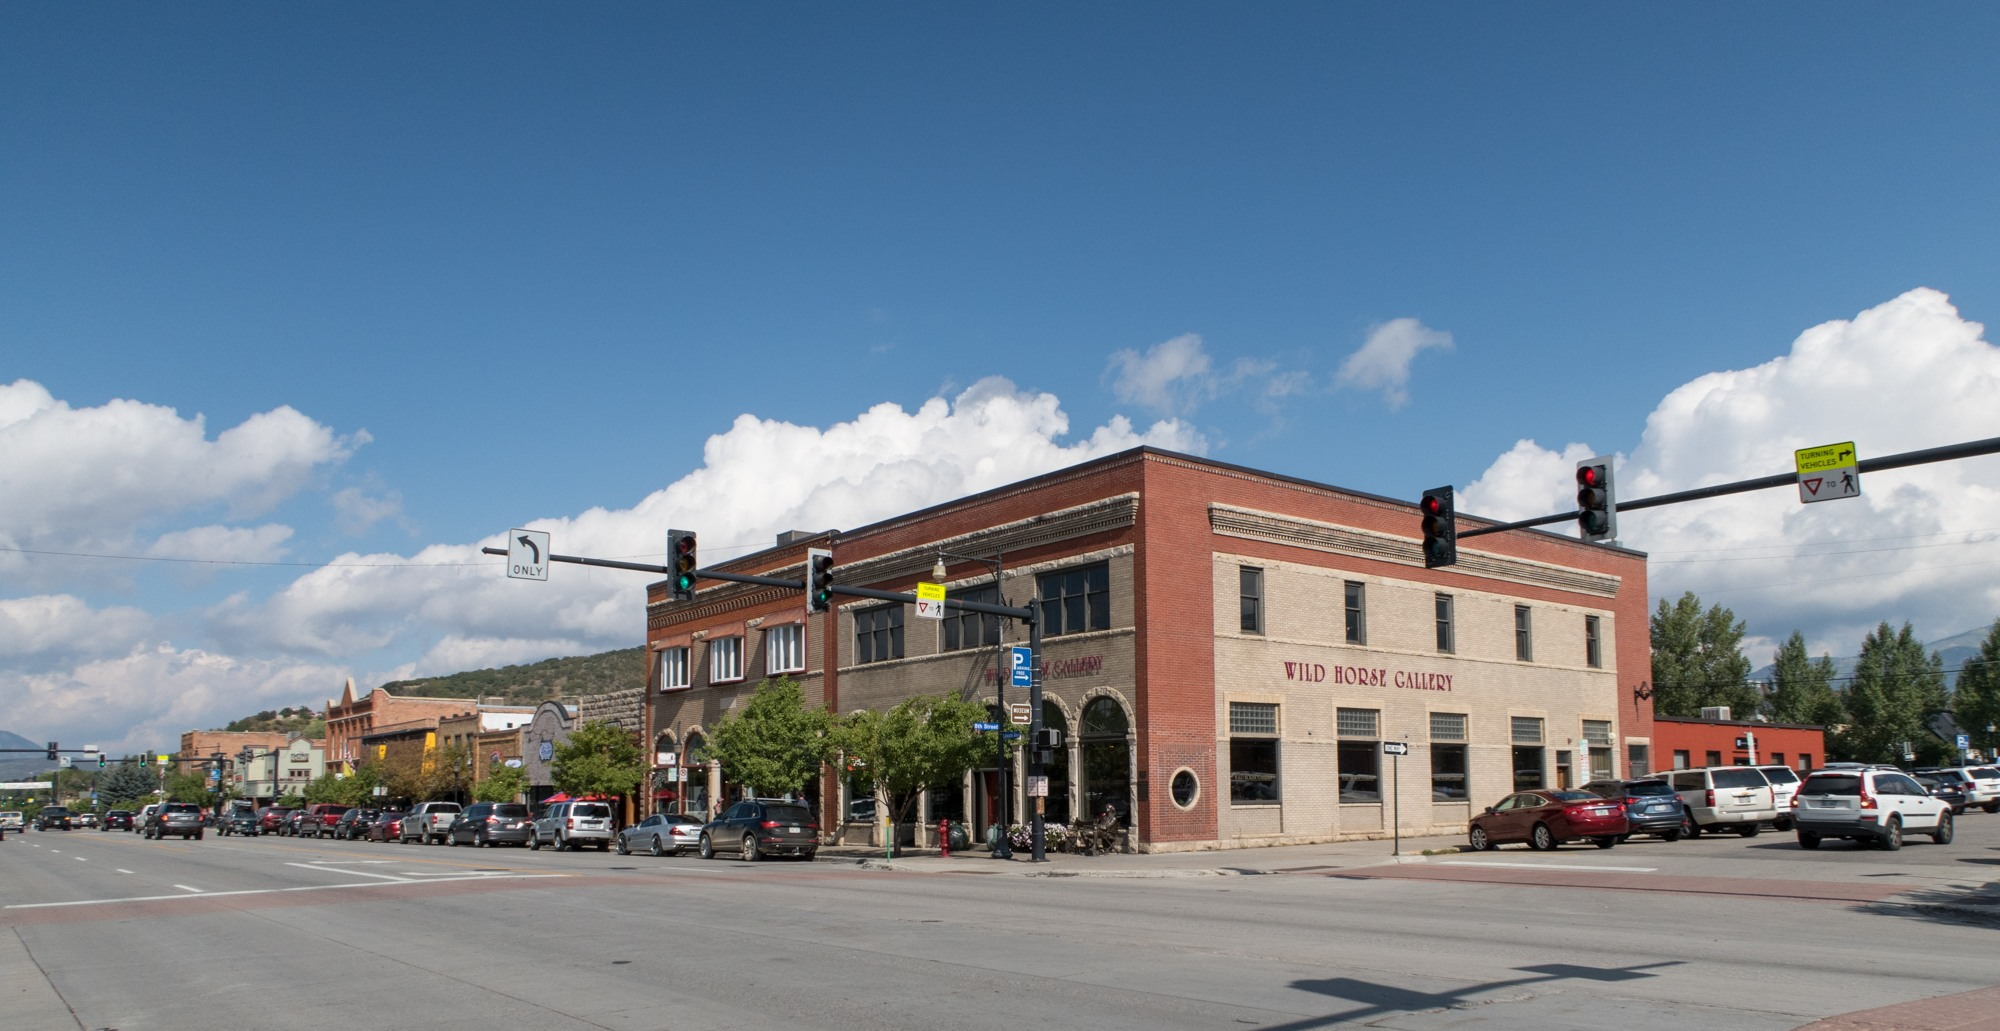 The main street running through Steamboat Springs, Colorado